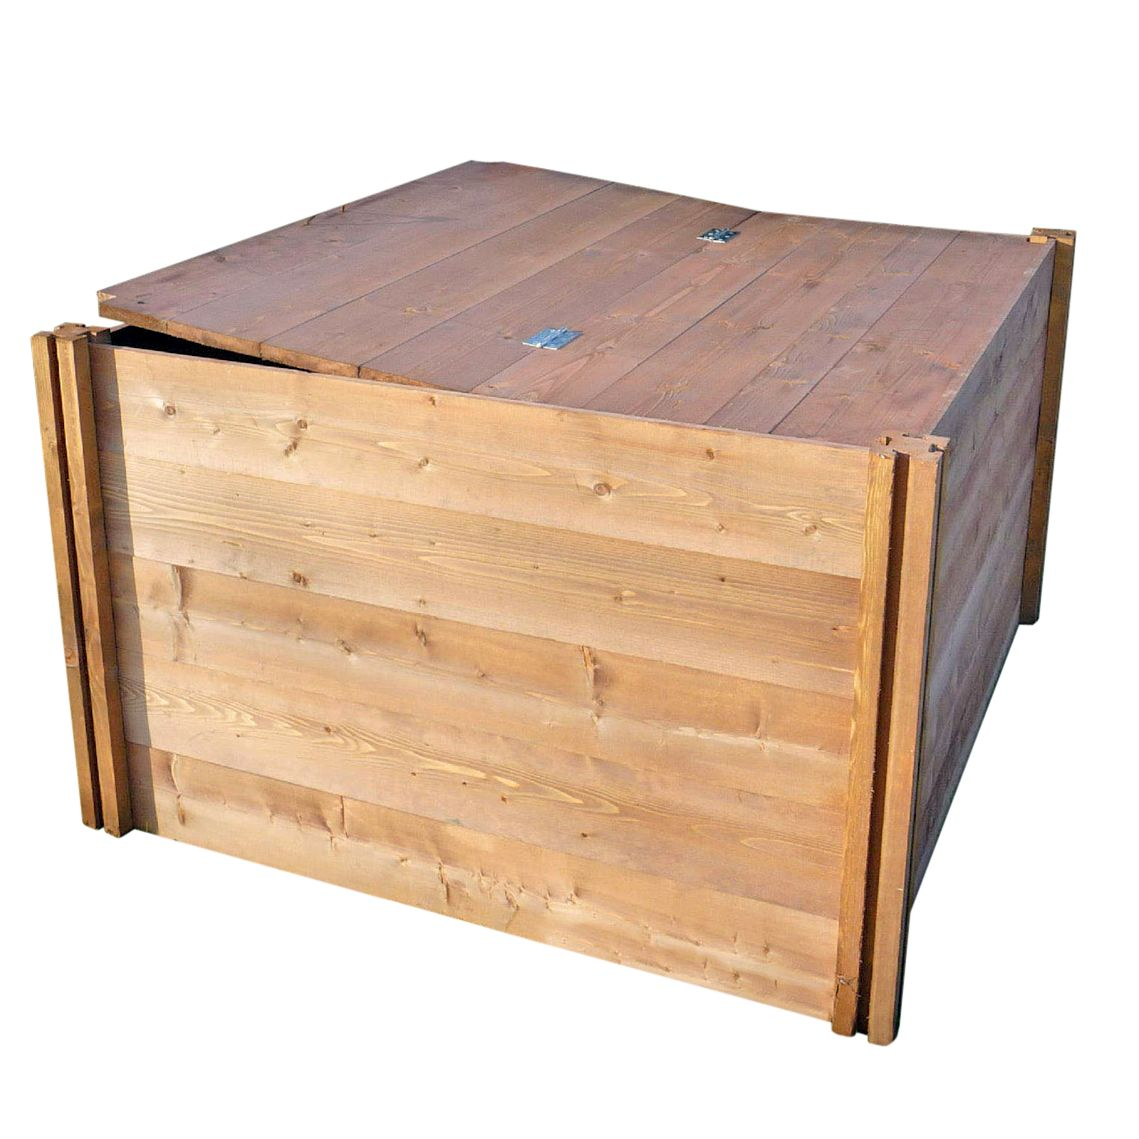 The Big Square Wooden Compost Bin Lid